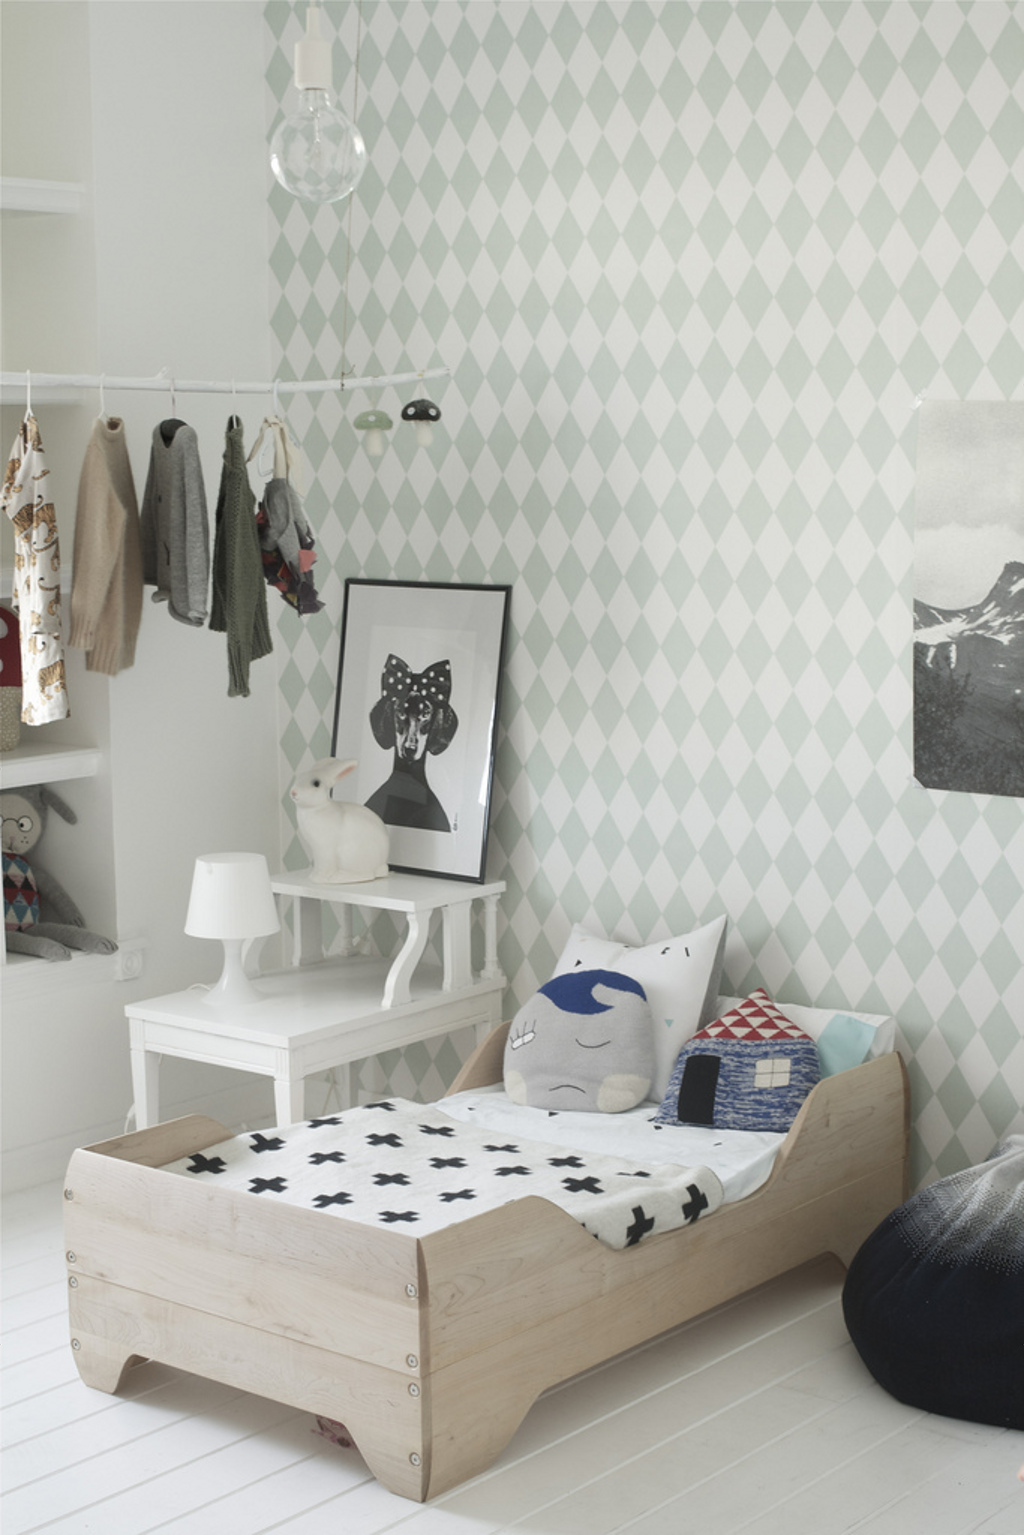 Leuk Behang Kinderkamer.Kinderkamer Behang Thestylebox